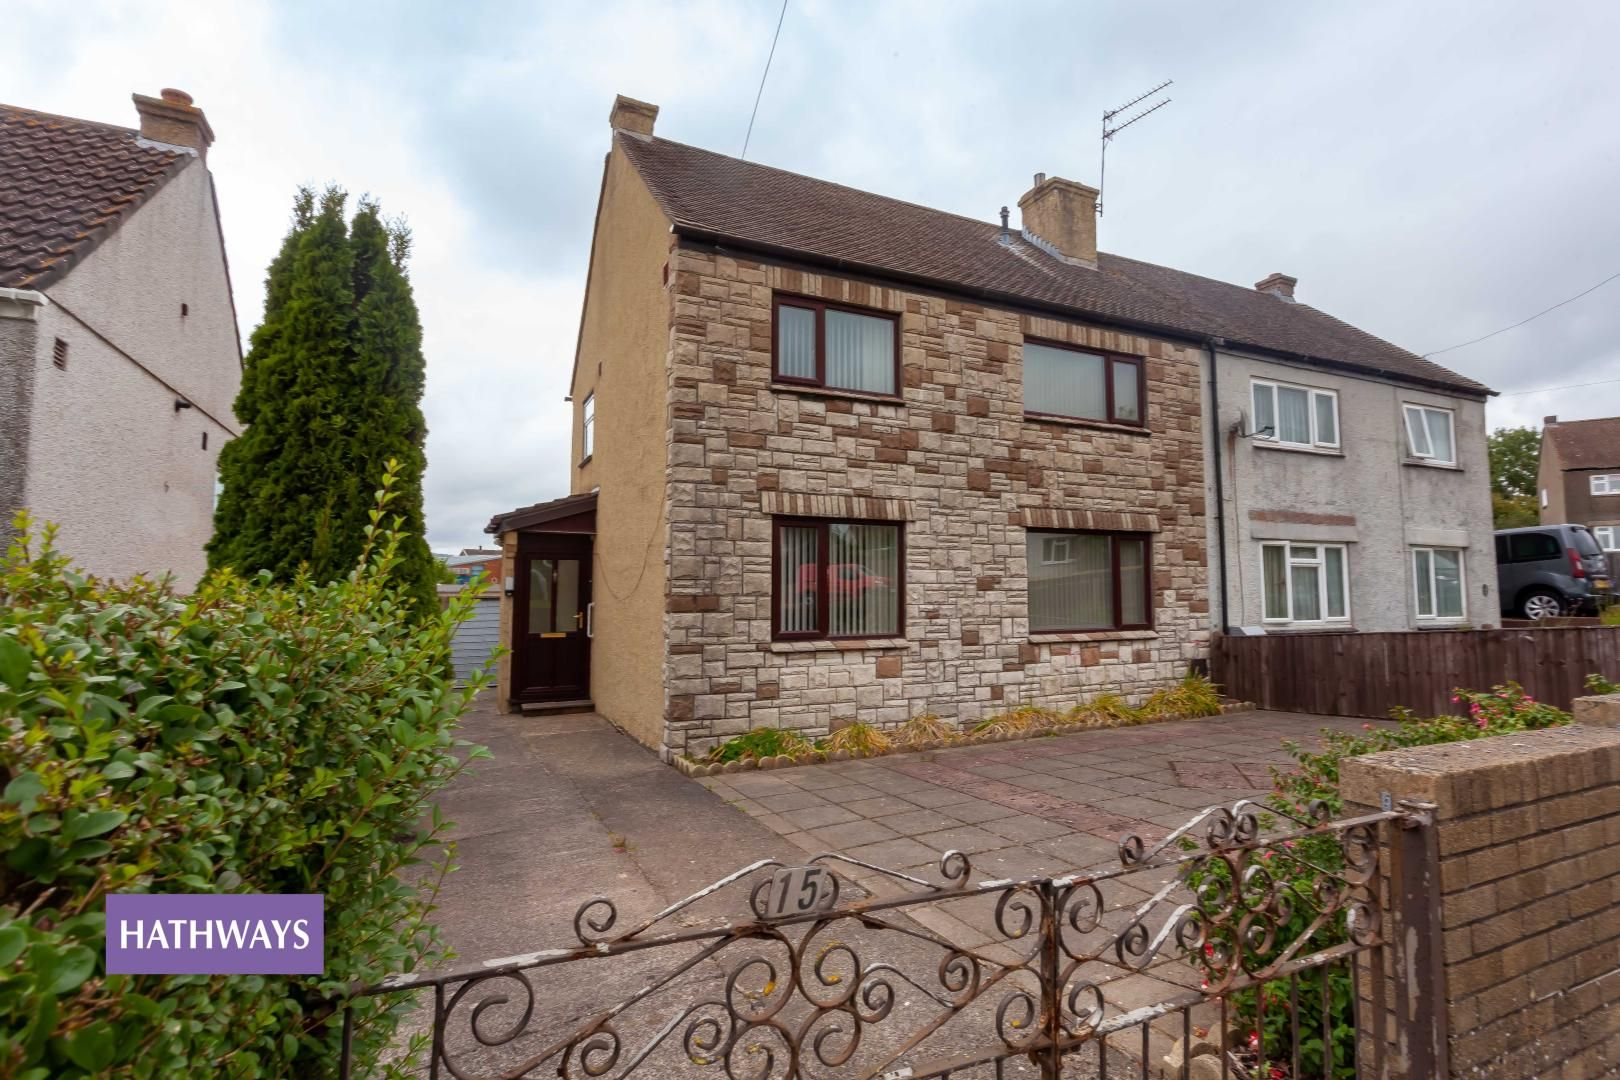 3 bed house for sale in Glascoed Road, NP4